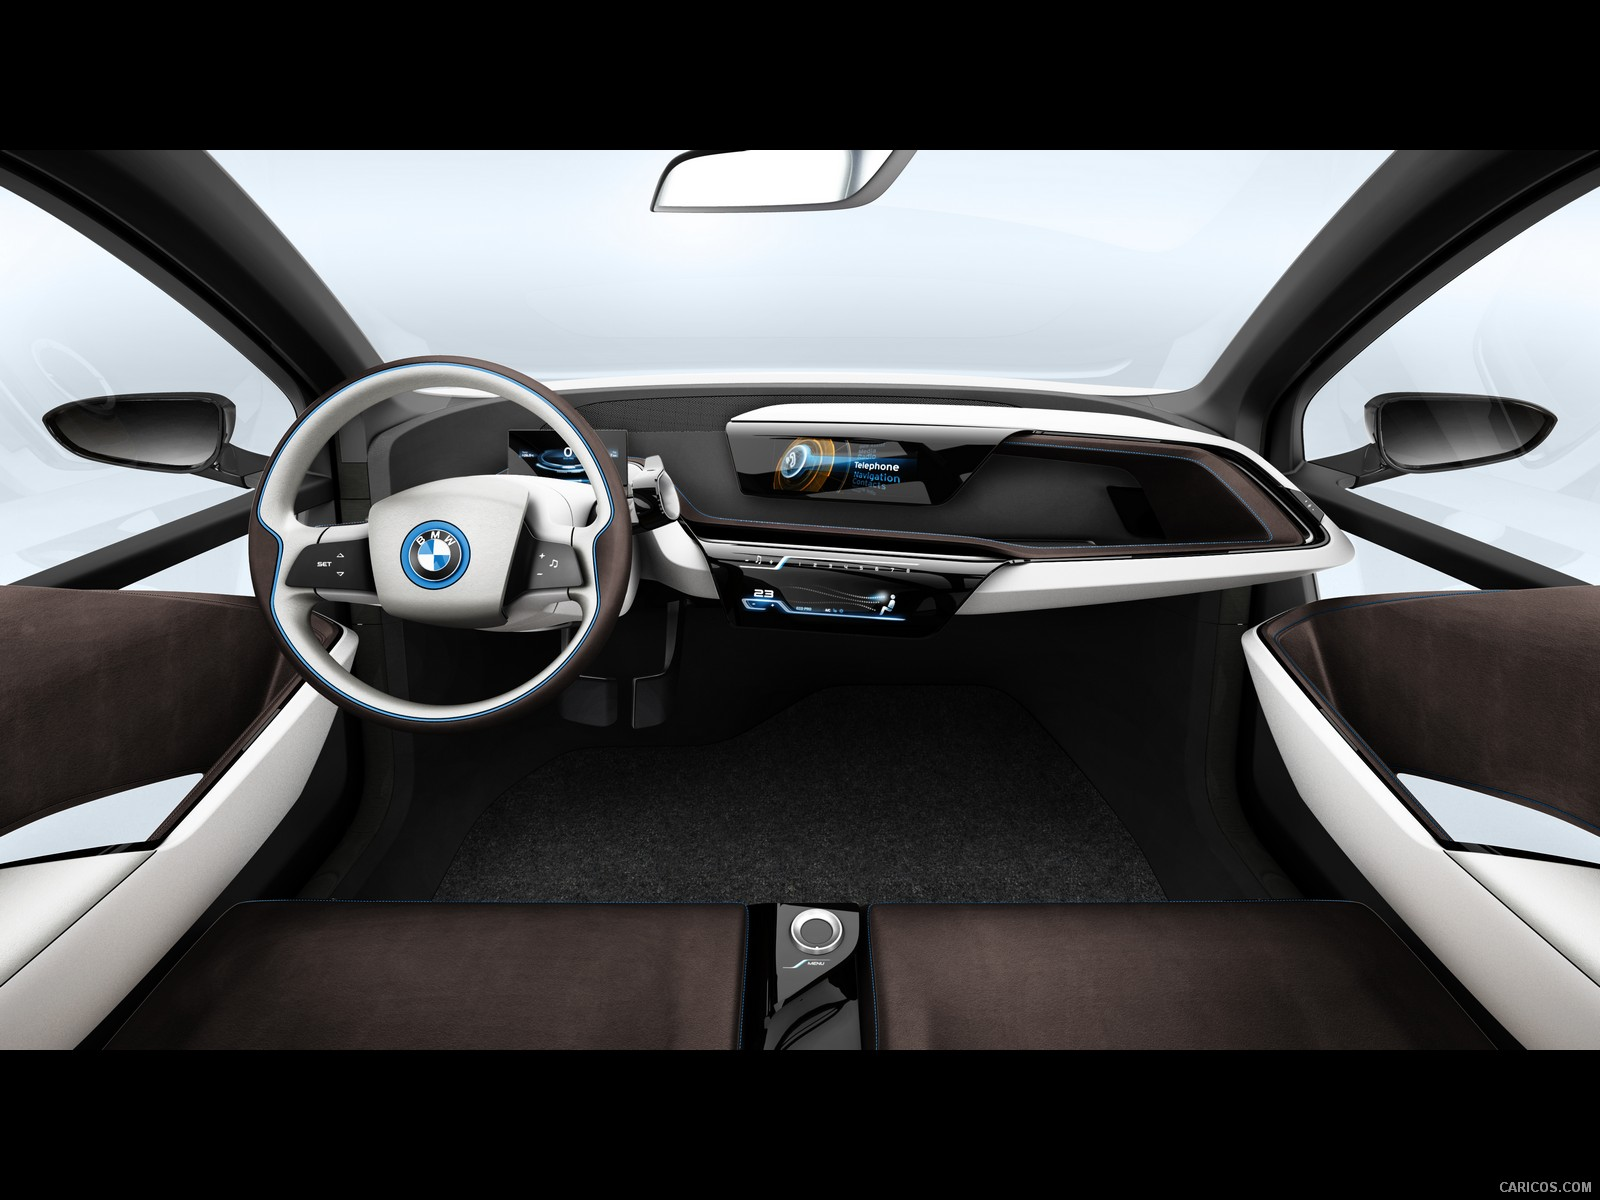 1600x1200 - BMW i3 Concept Wallpapers 28